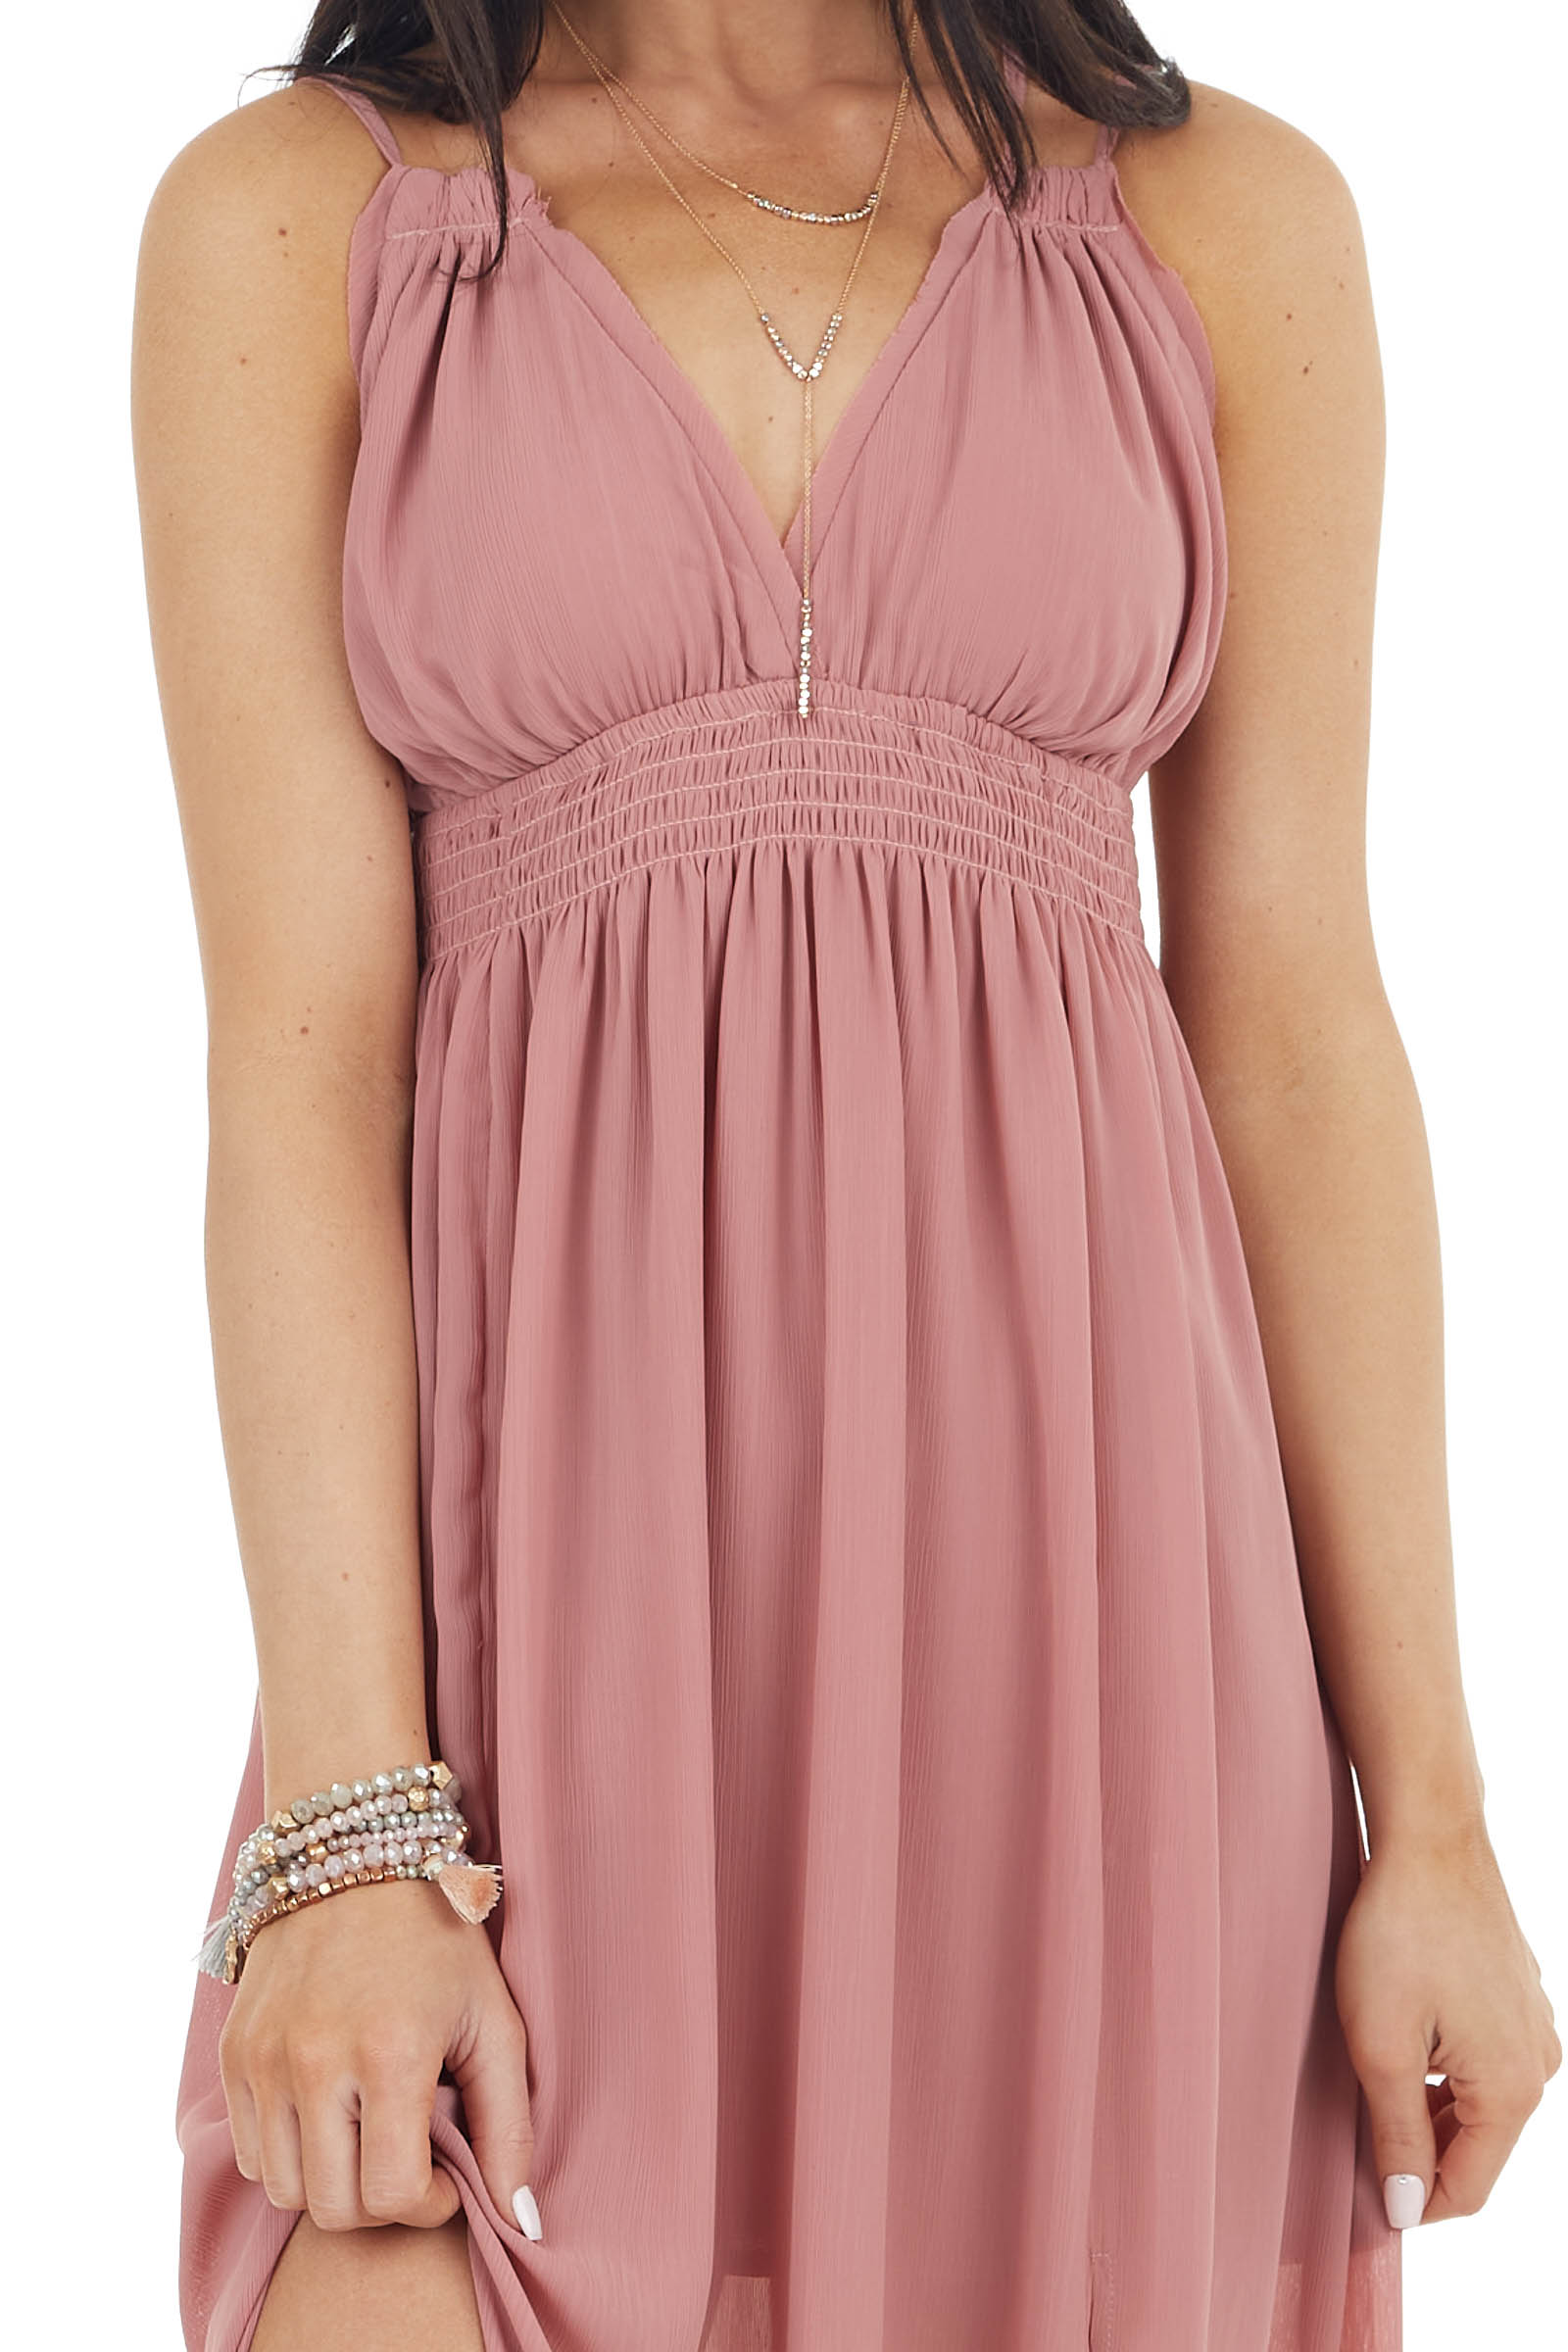 Dusty Rose Sleeveless Maxi Dress with Side Slit Detail